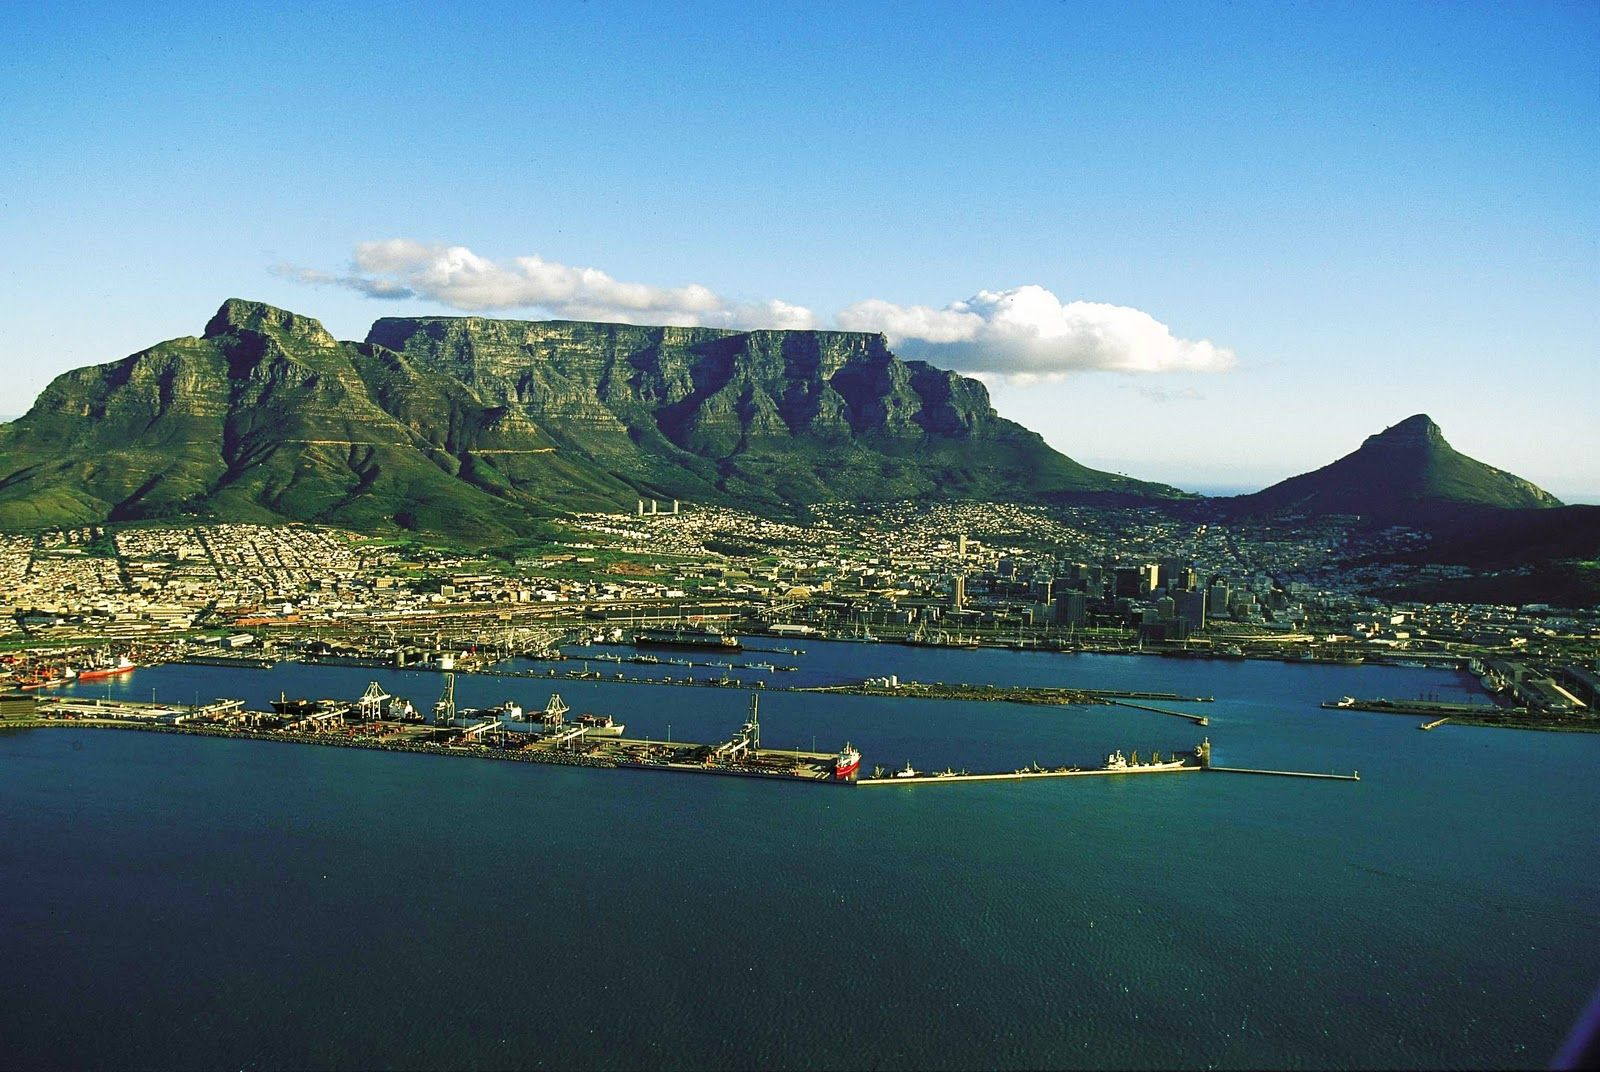 Table mountain cape town background places to visit - Table mountain wallpaper ...